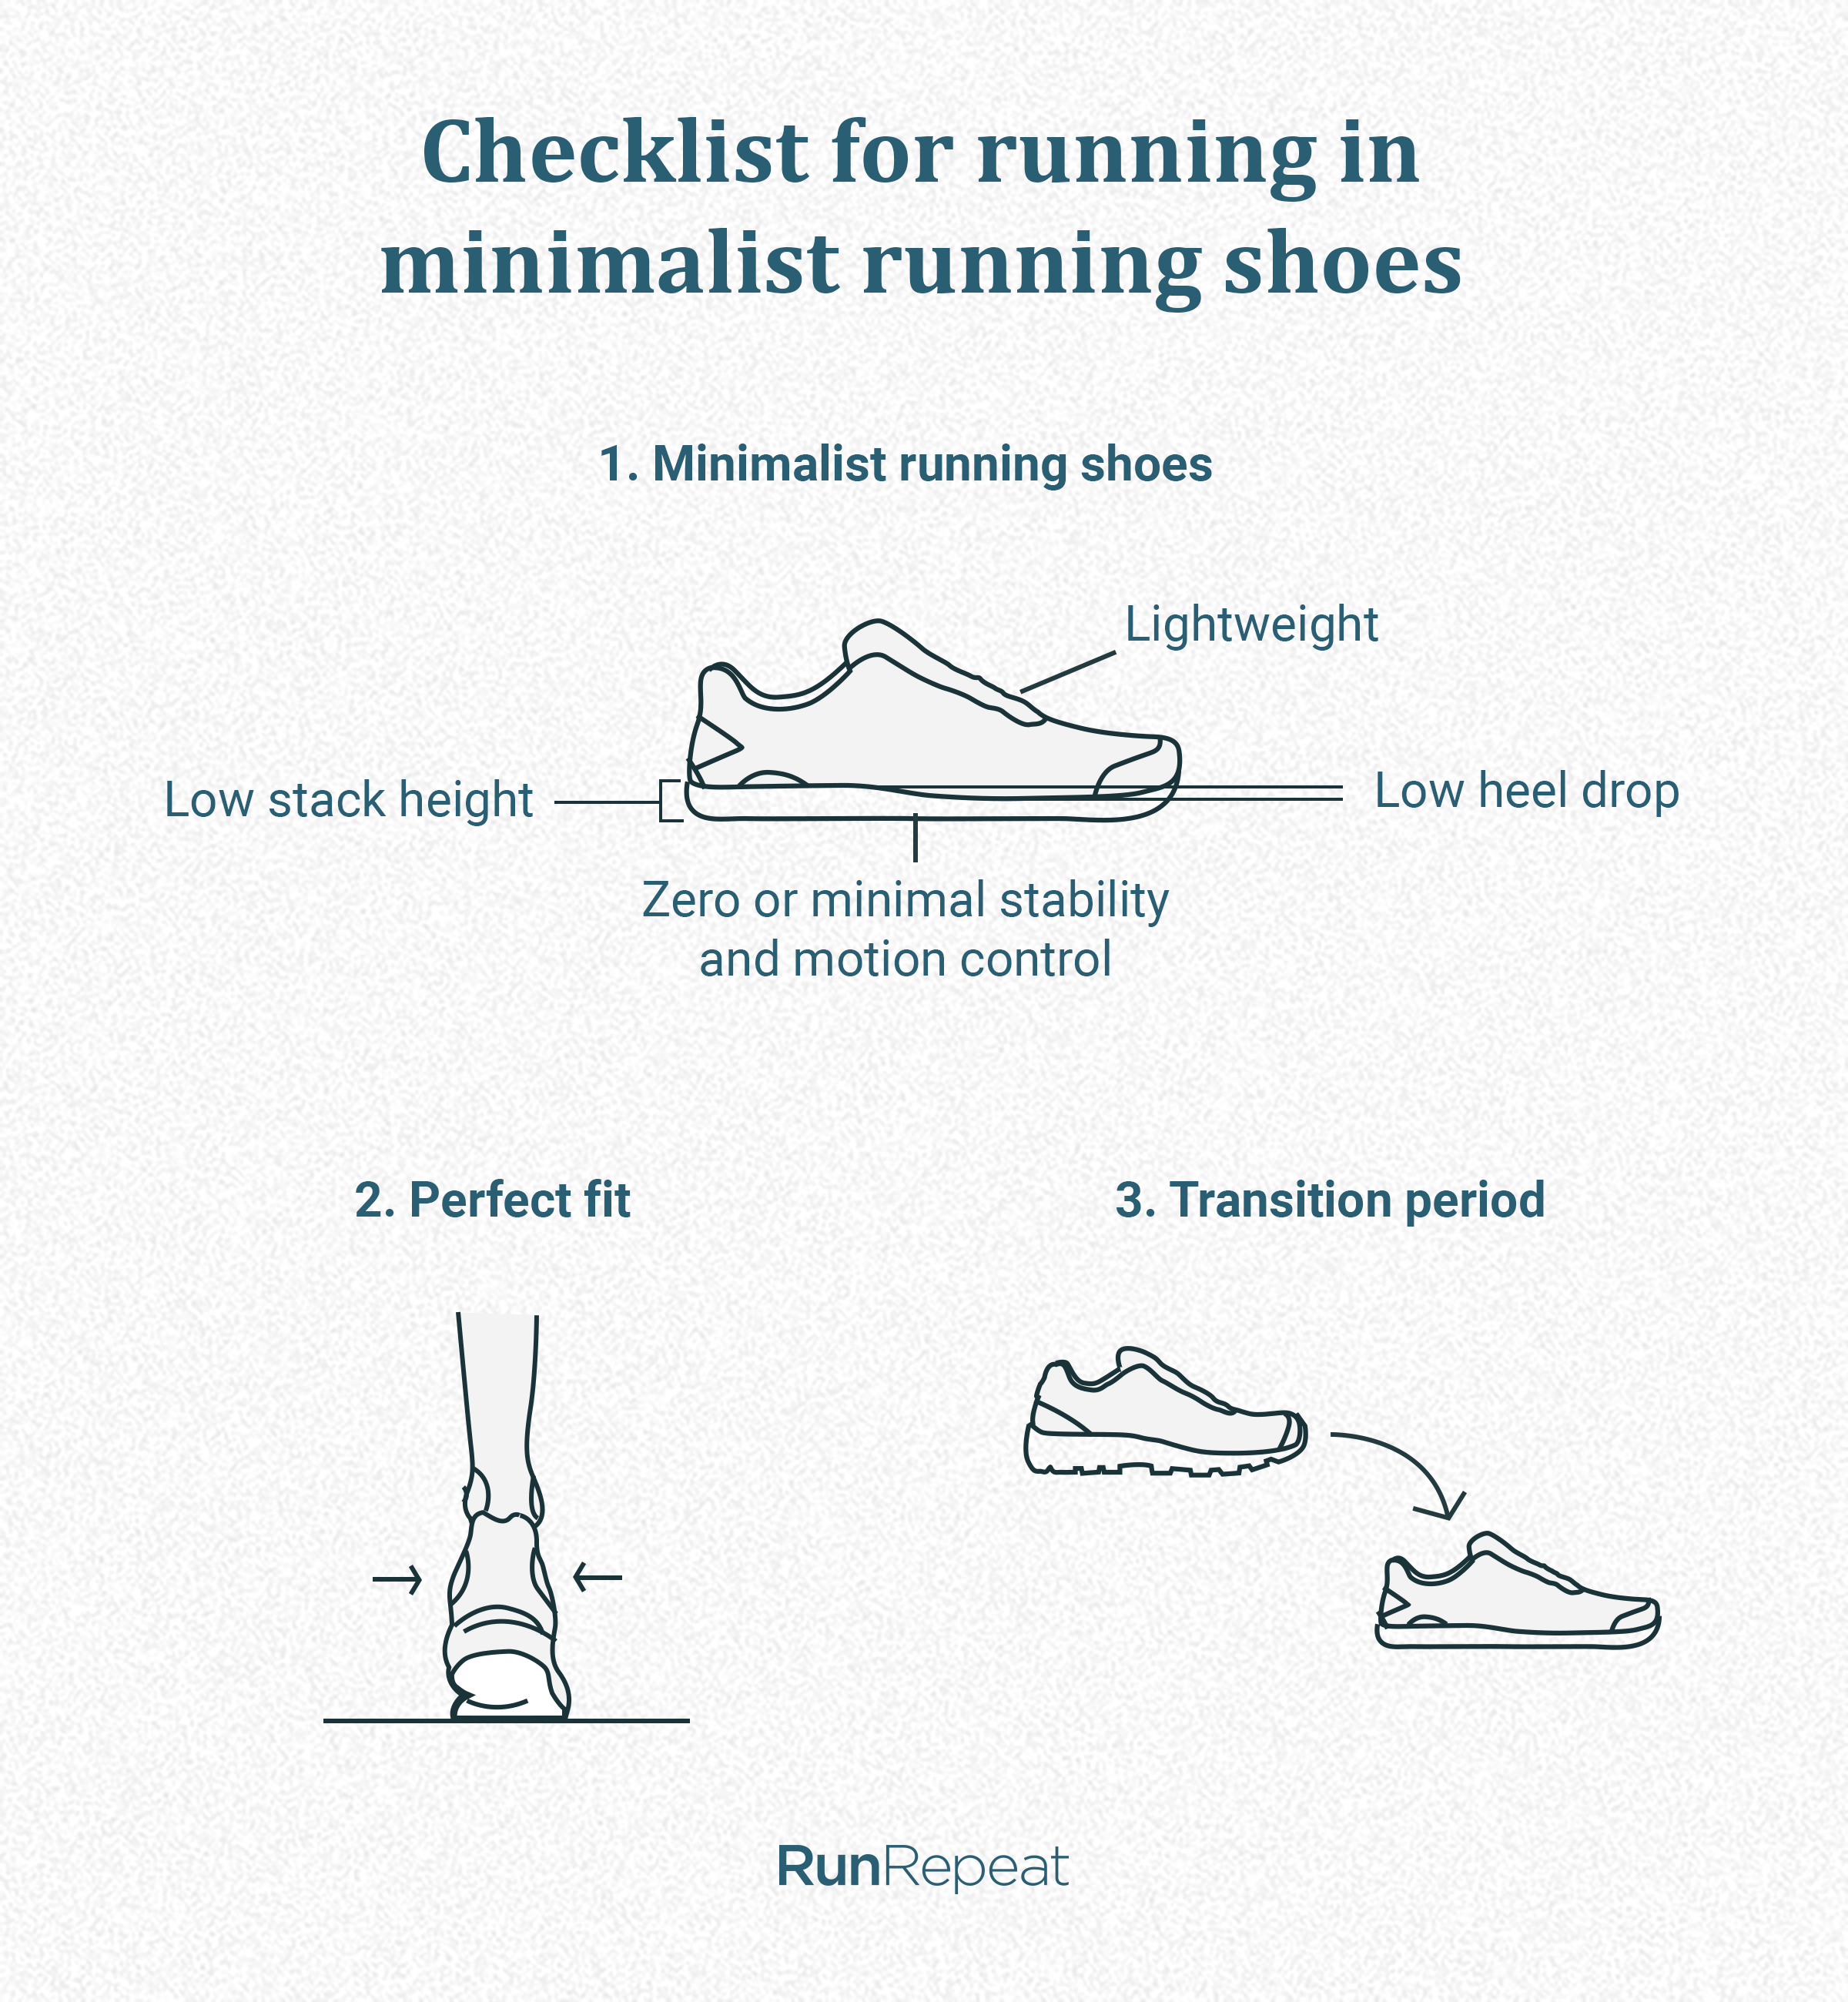 checklist-for-running-in-minimalist-shoes.png